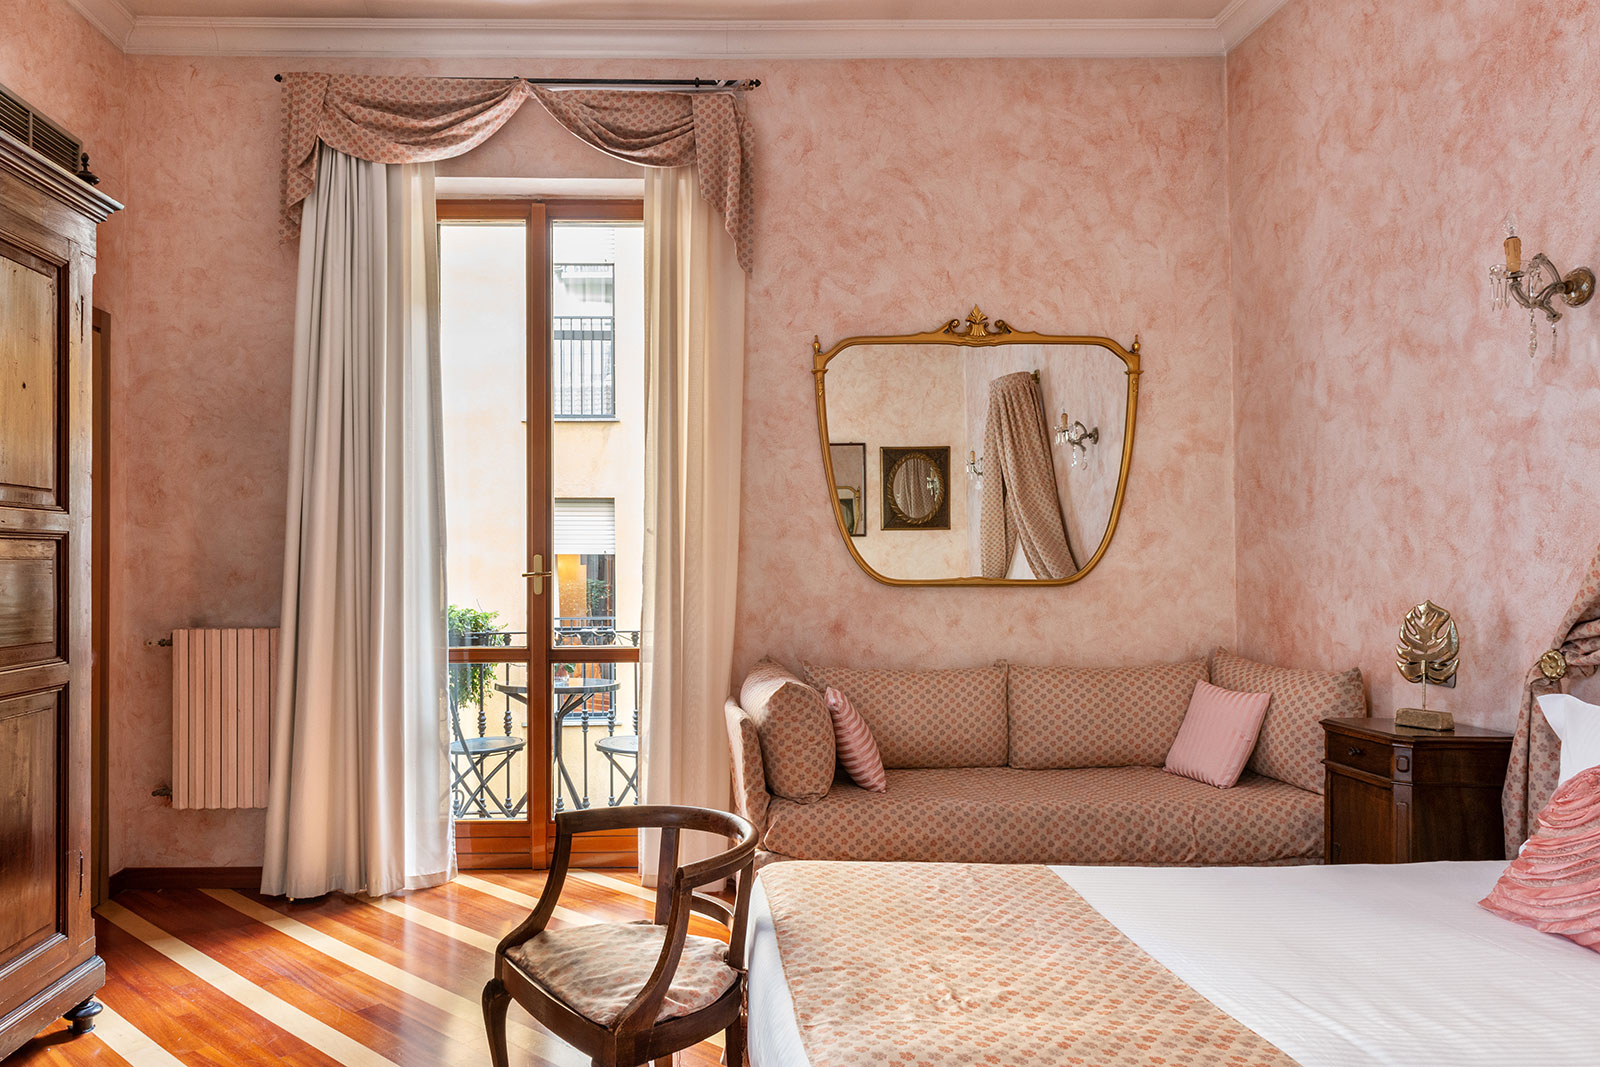 Hotel Sanpi Milano | Boutique Hotel in the center of Milan